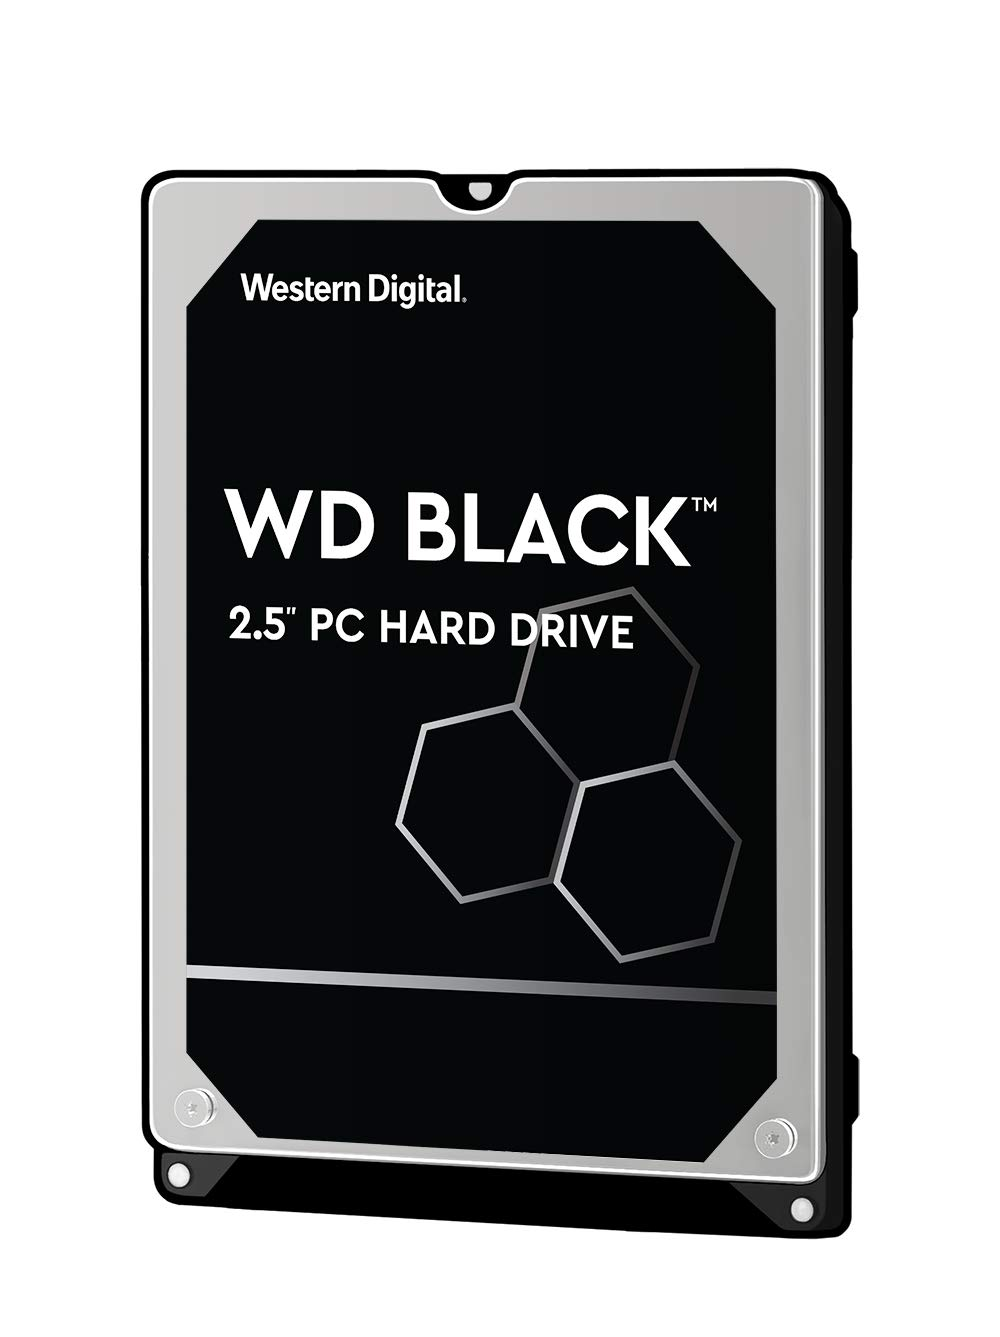 WD Black 1TB Performance Mobile Hard Disk Drive - 7200 RPM SATA 6 Gb/s 32MB Cache 9.5 MM 2.5 Inch - WD10JPLX by Western Digital (Image #1)